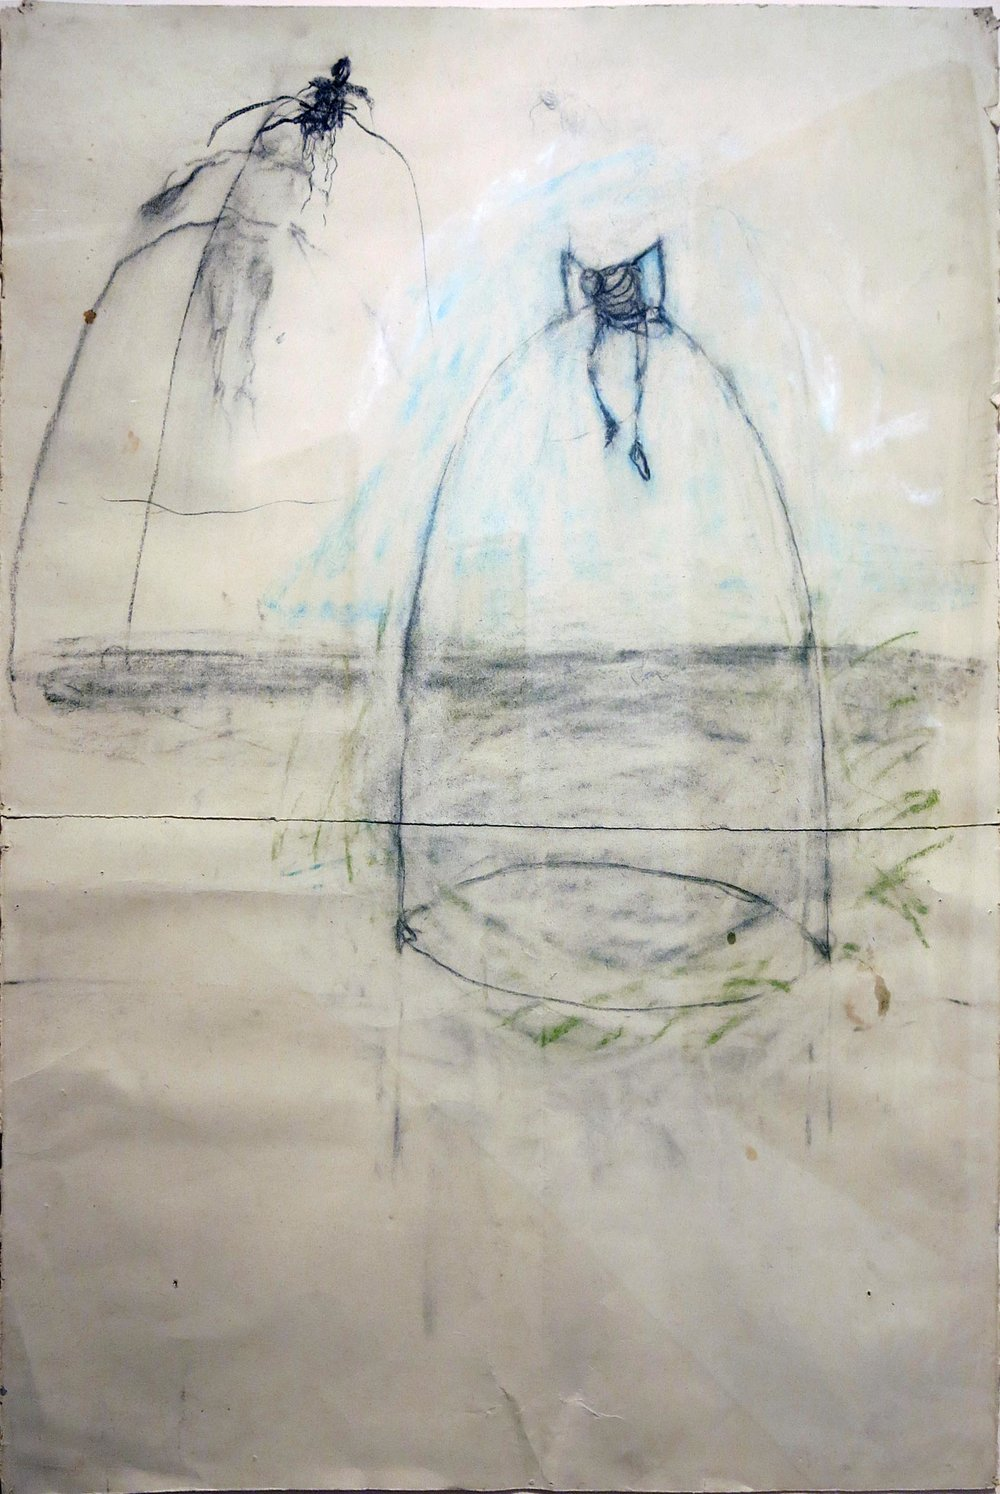 June Leaf,  Untitled,  2007, charcoal, pastel, 38h x 27w in.